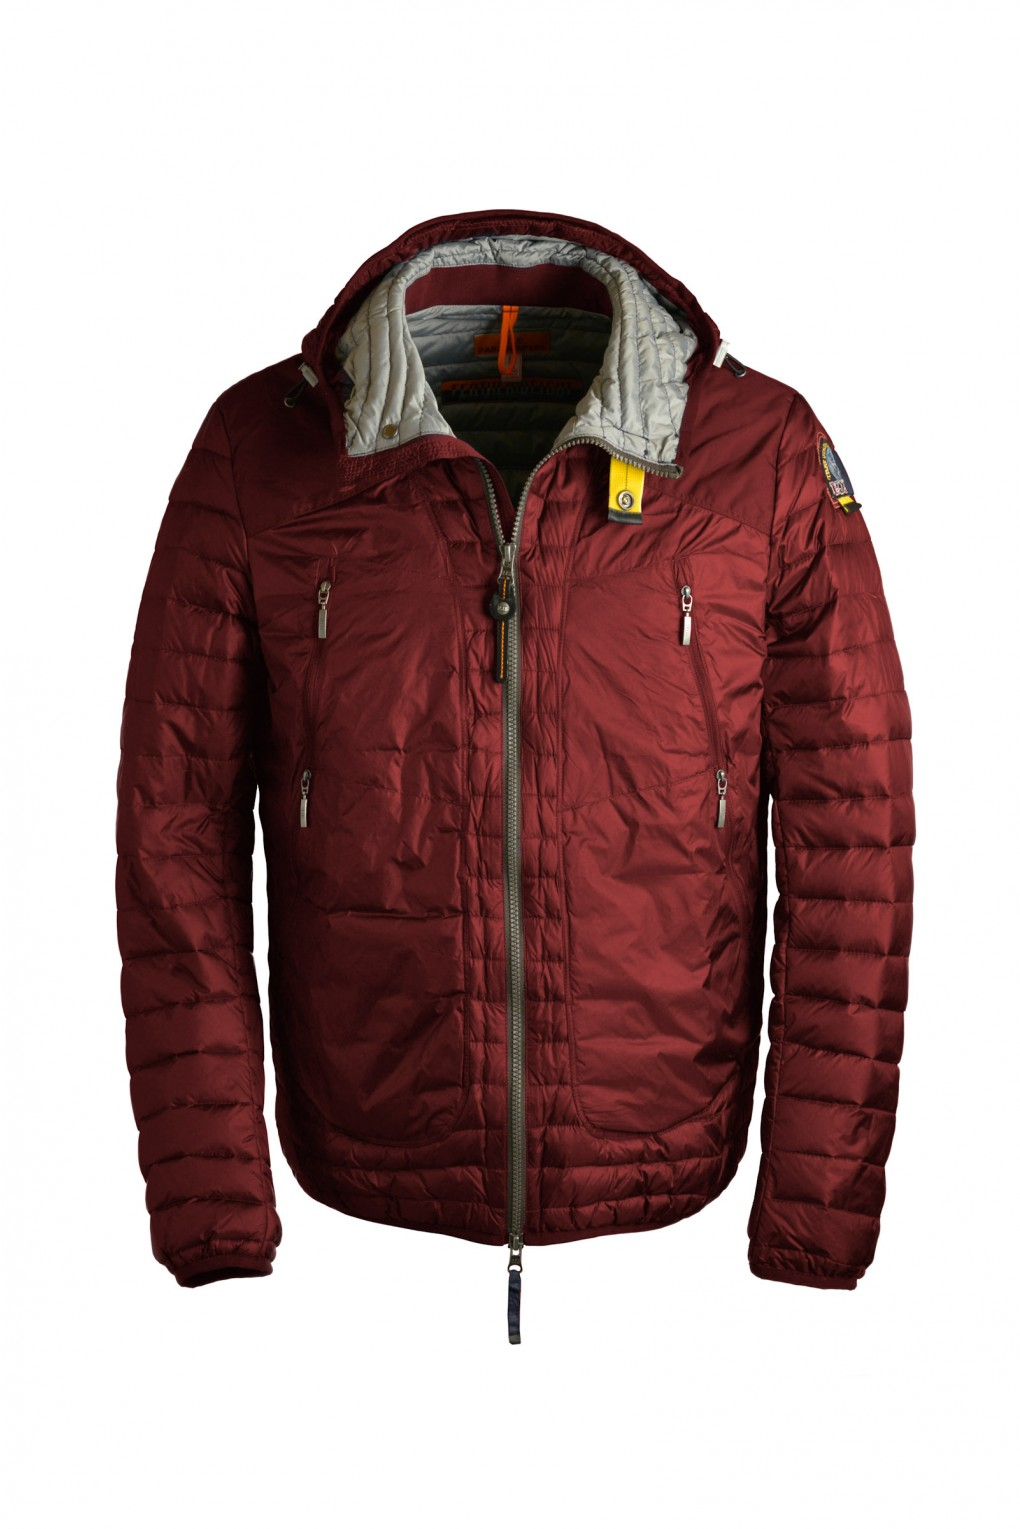 parajumpers ROBY man outerwear Red